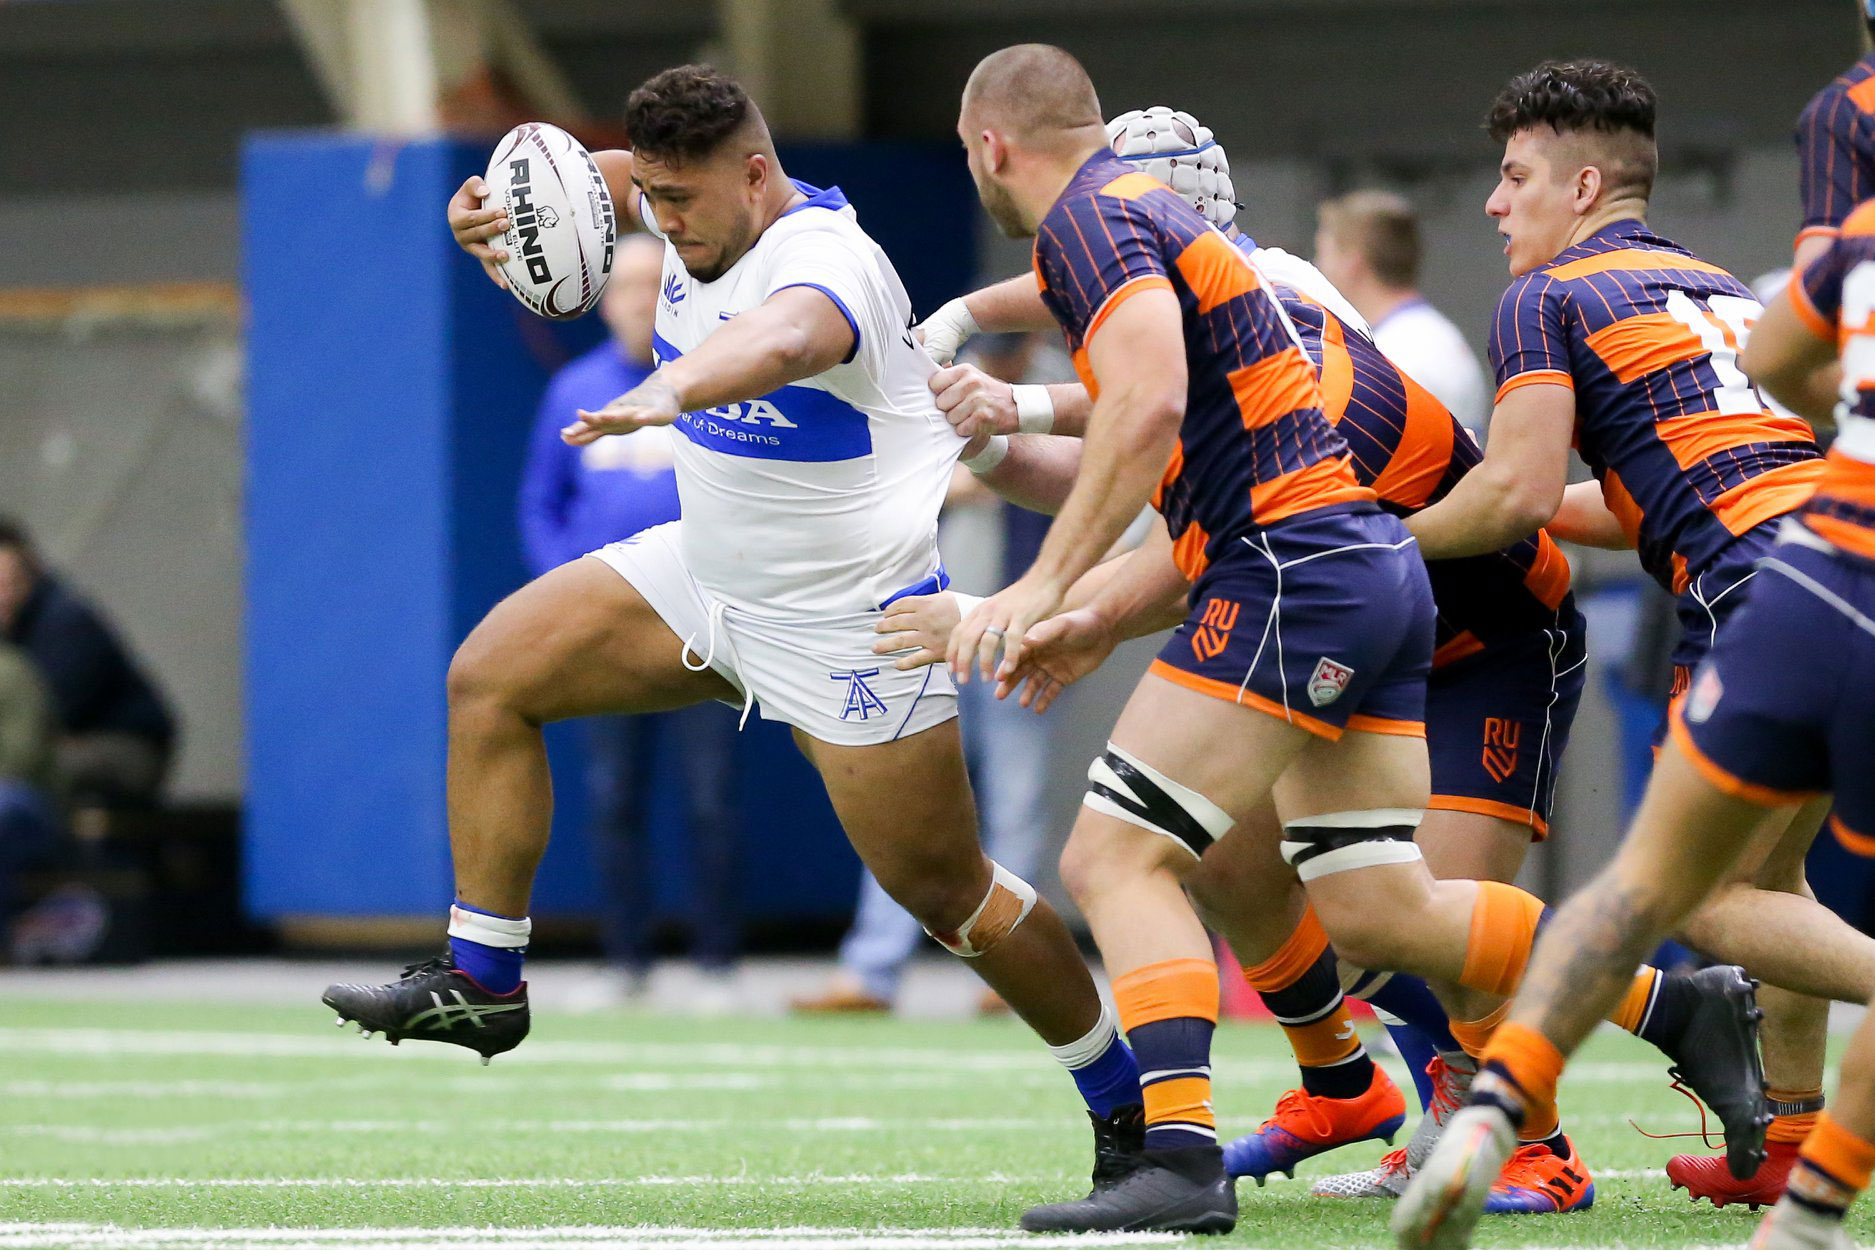 Toronto Arrows Confirm Transfer of Asiata to Queensland Reds